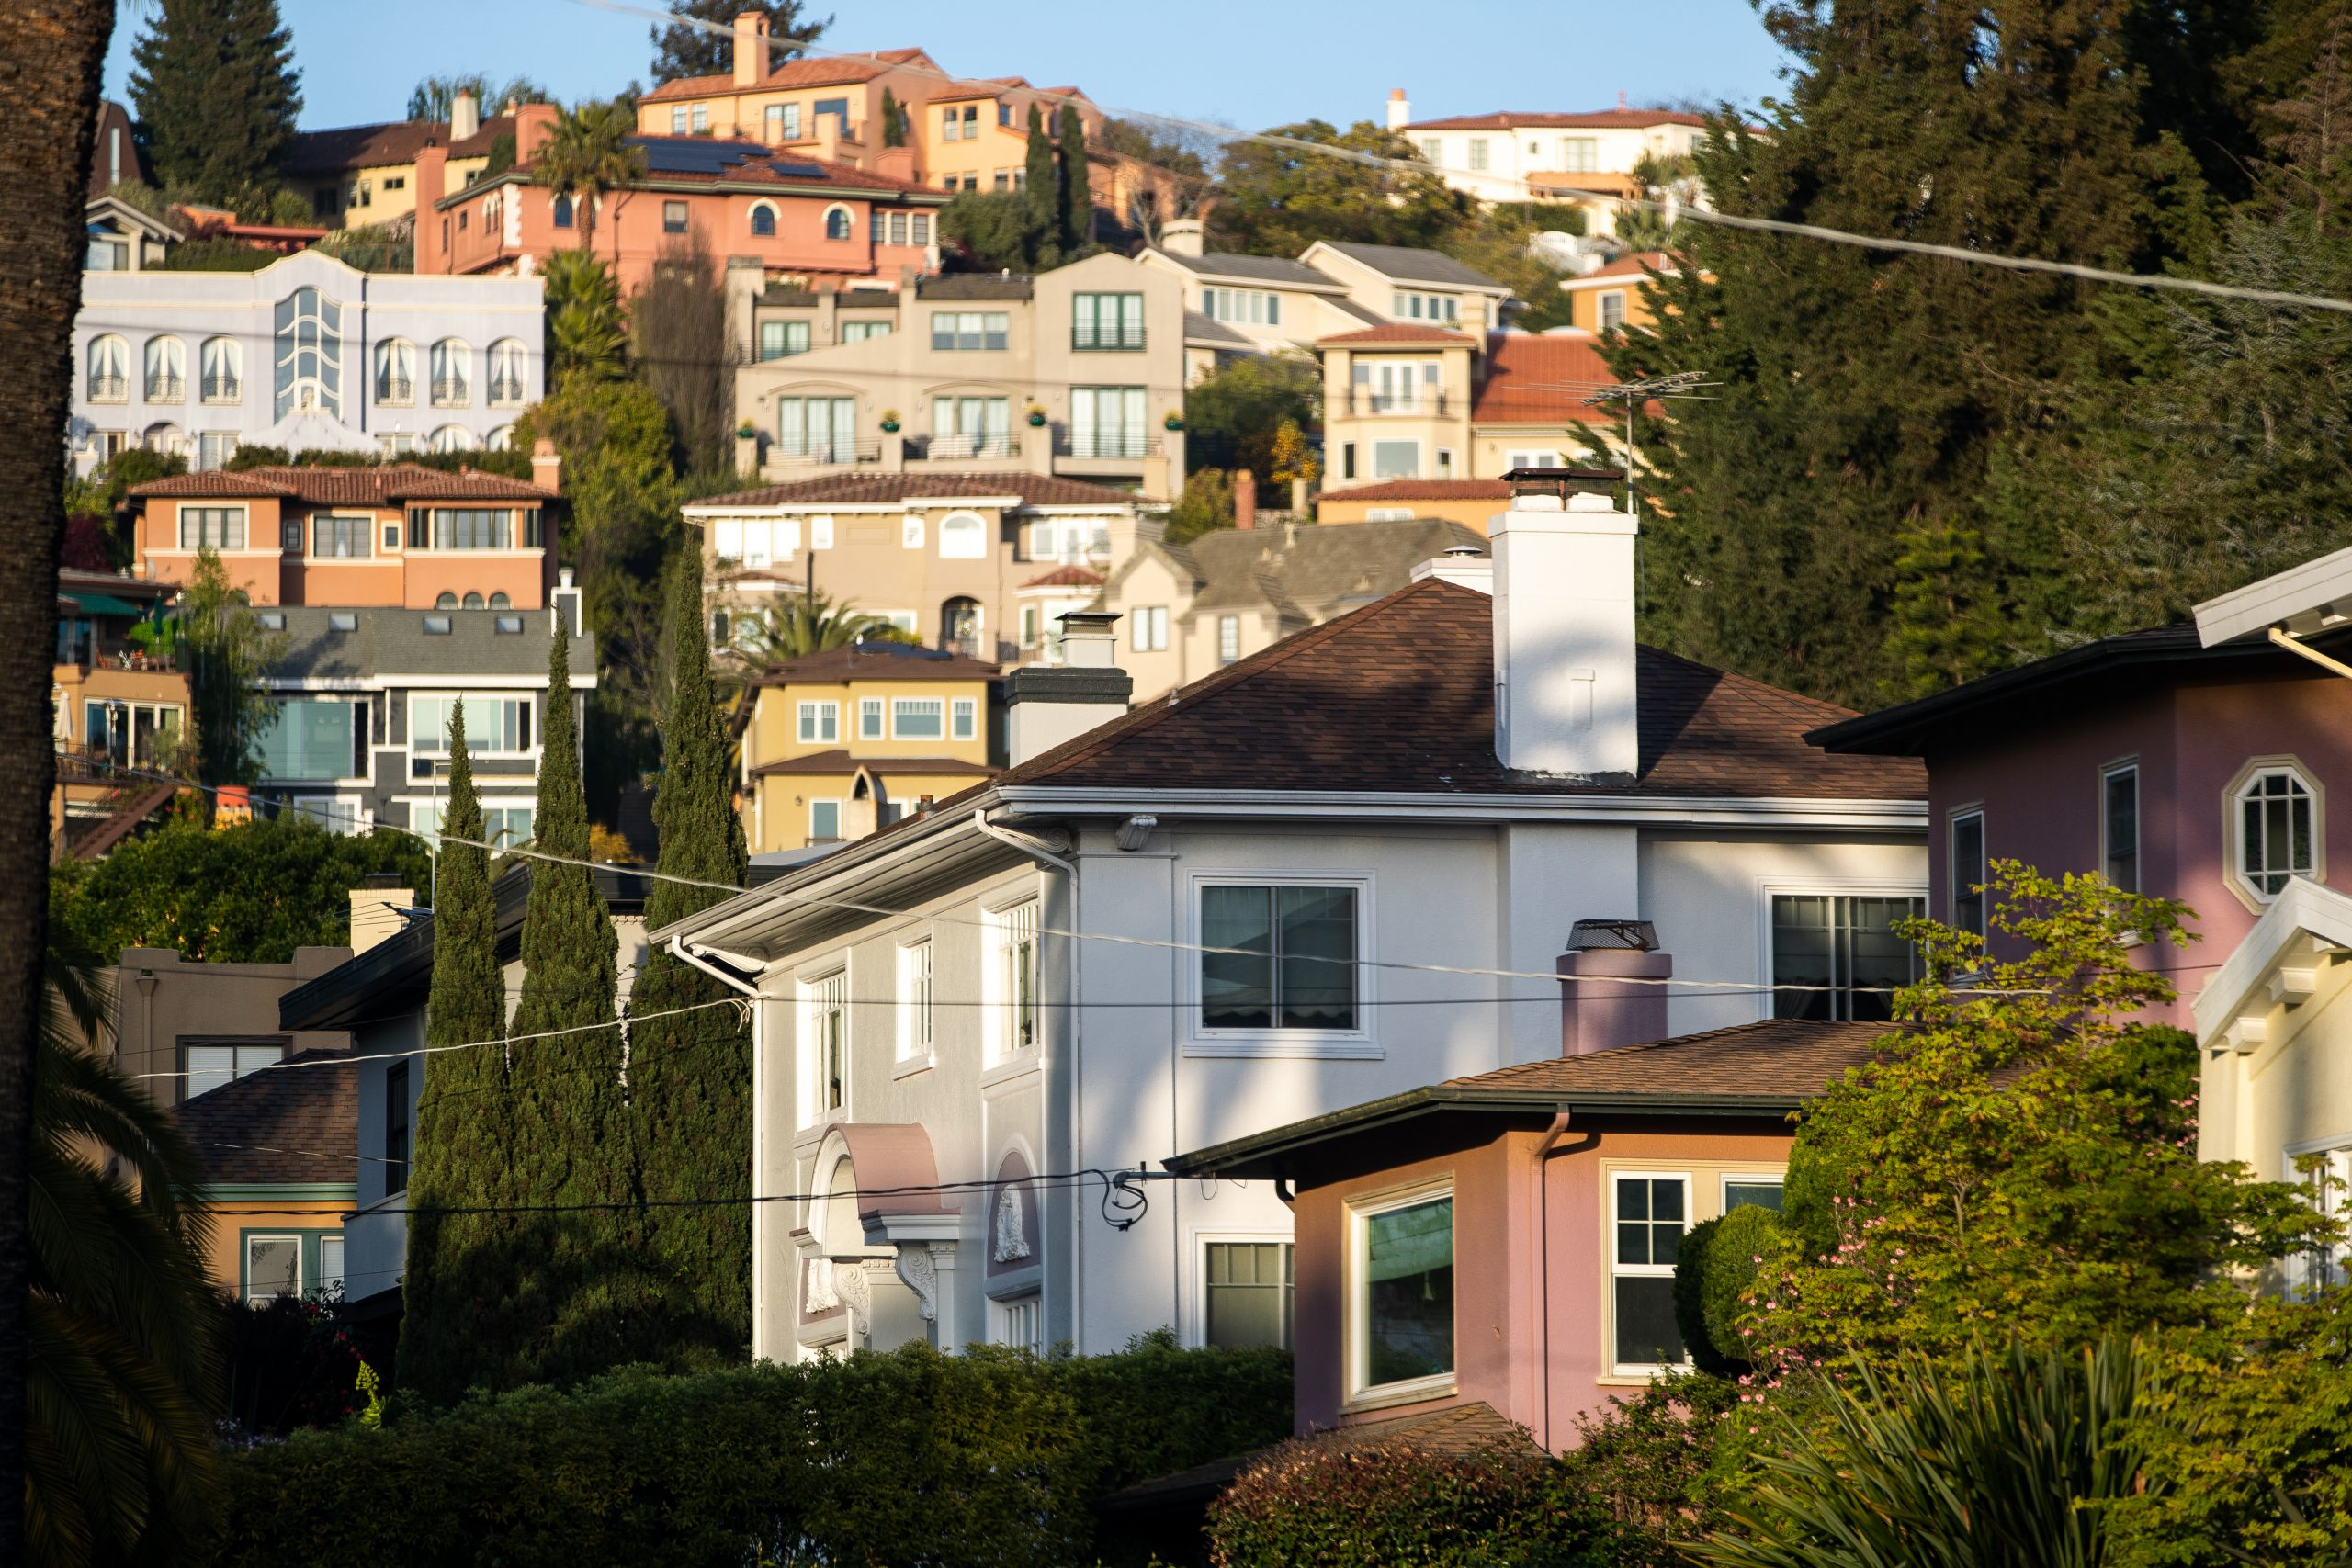 Oakland wants to end single-family zoning. Can the city get it right?